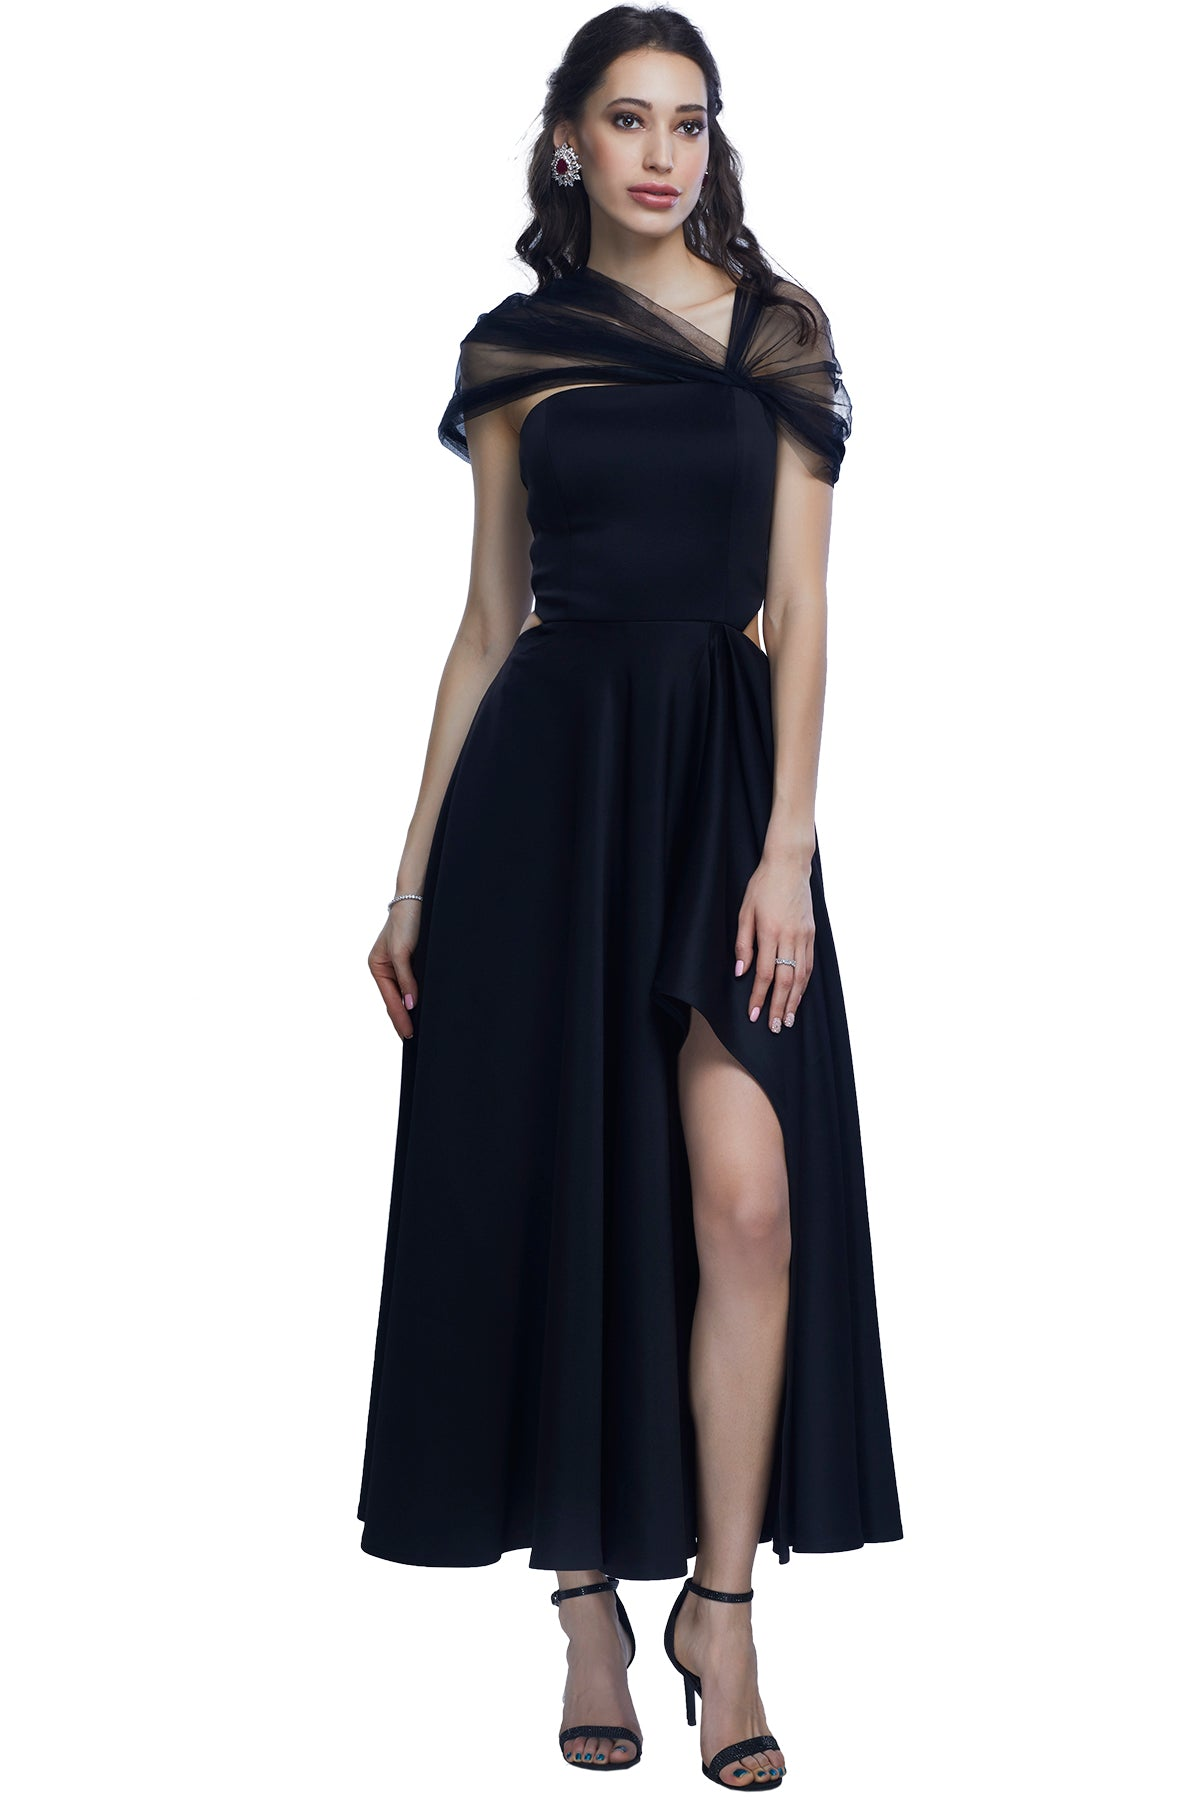 Black gown in scuba fabric with a high front side slit and net off shoulder drape.